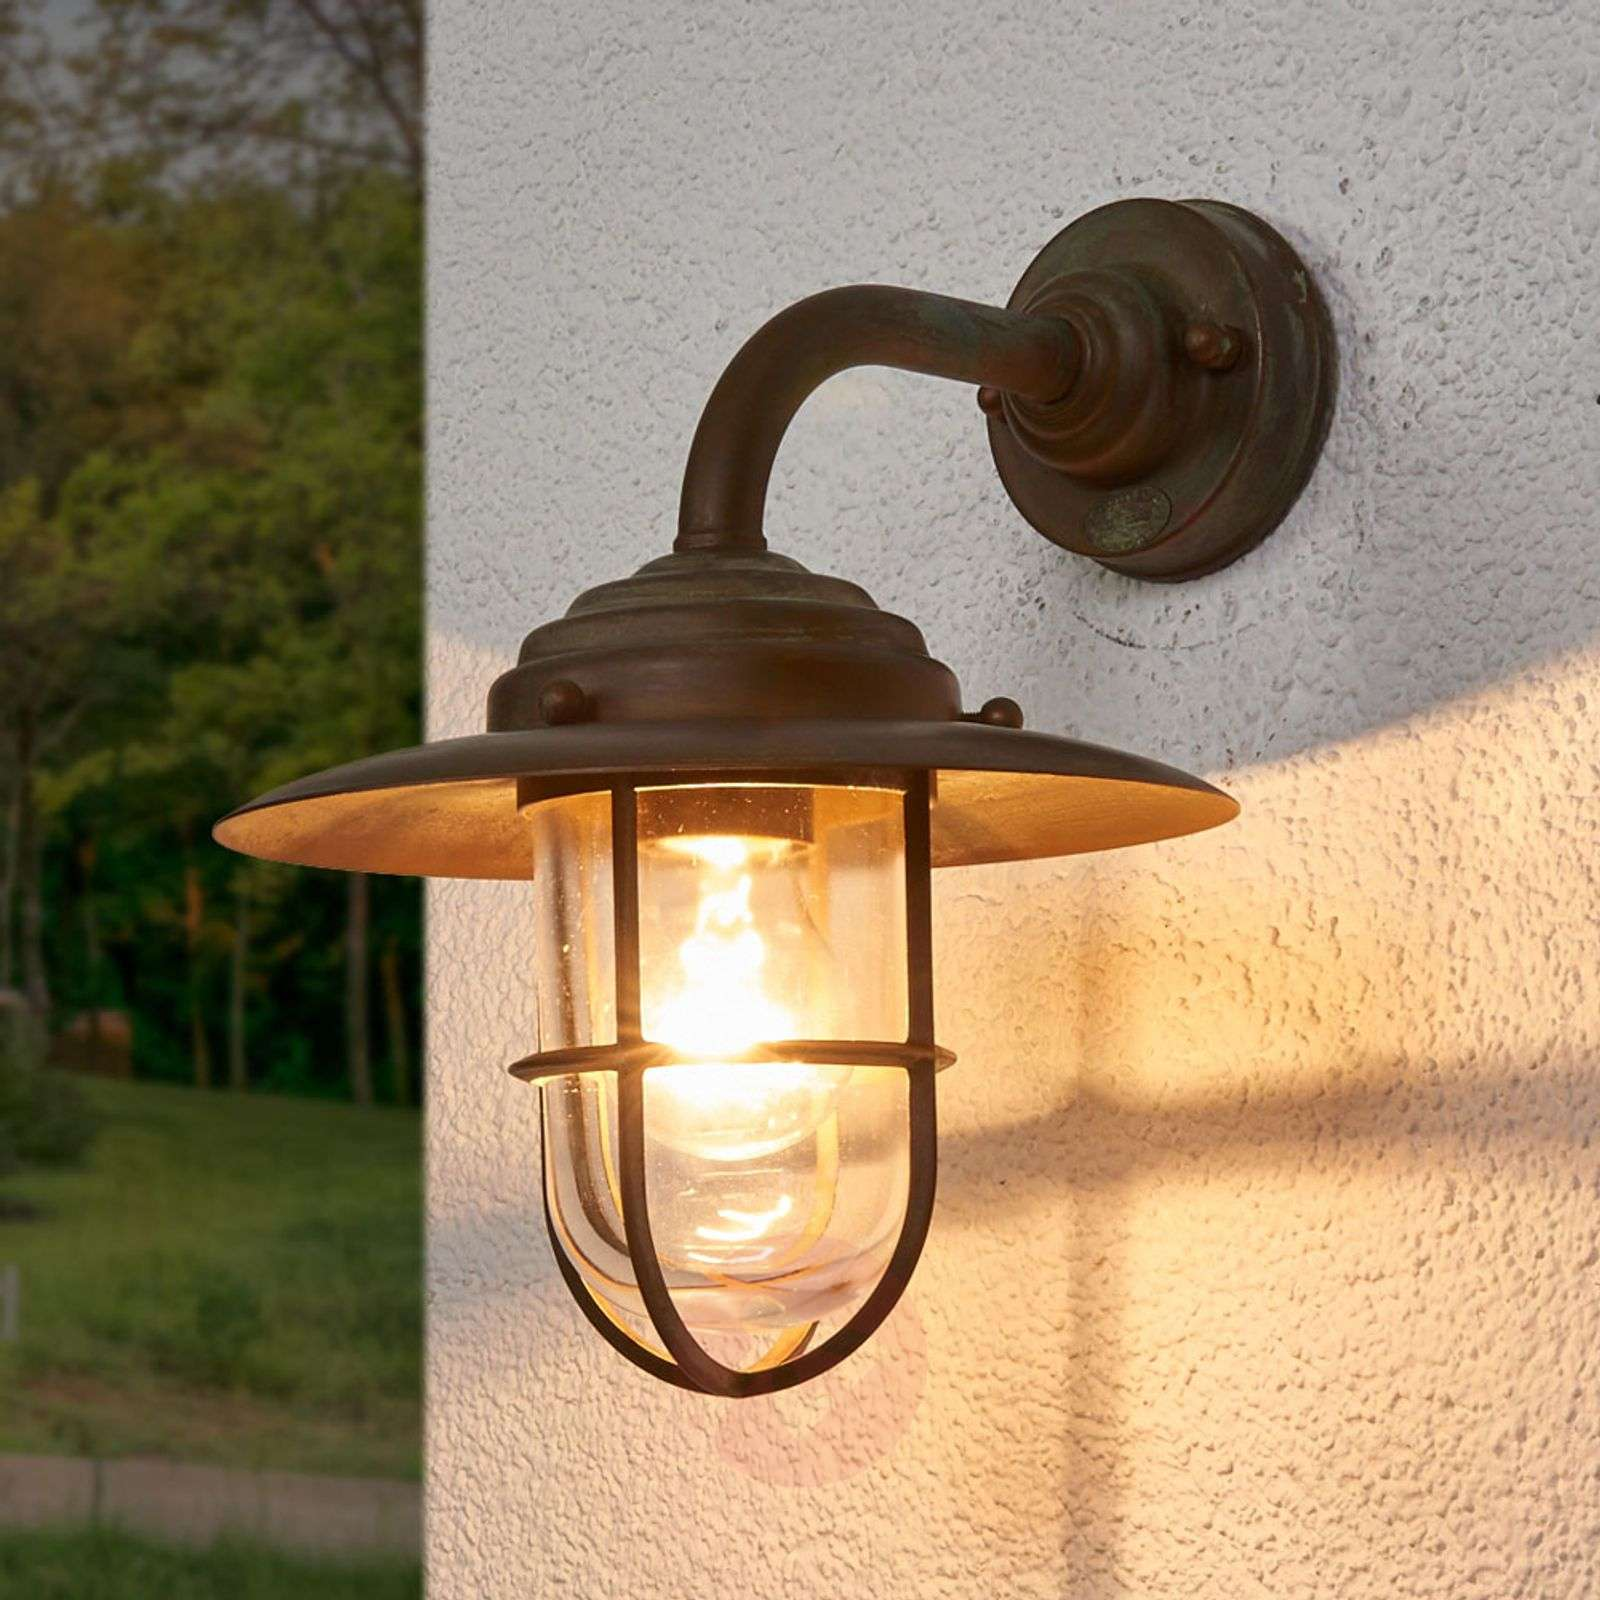 Stylish outdoor wall light Antique-6515089X-01